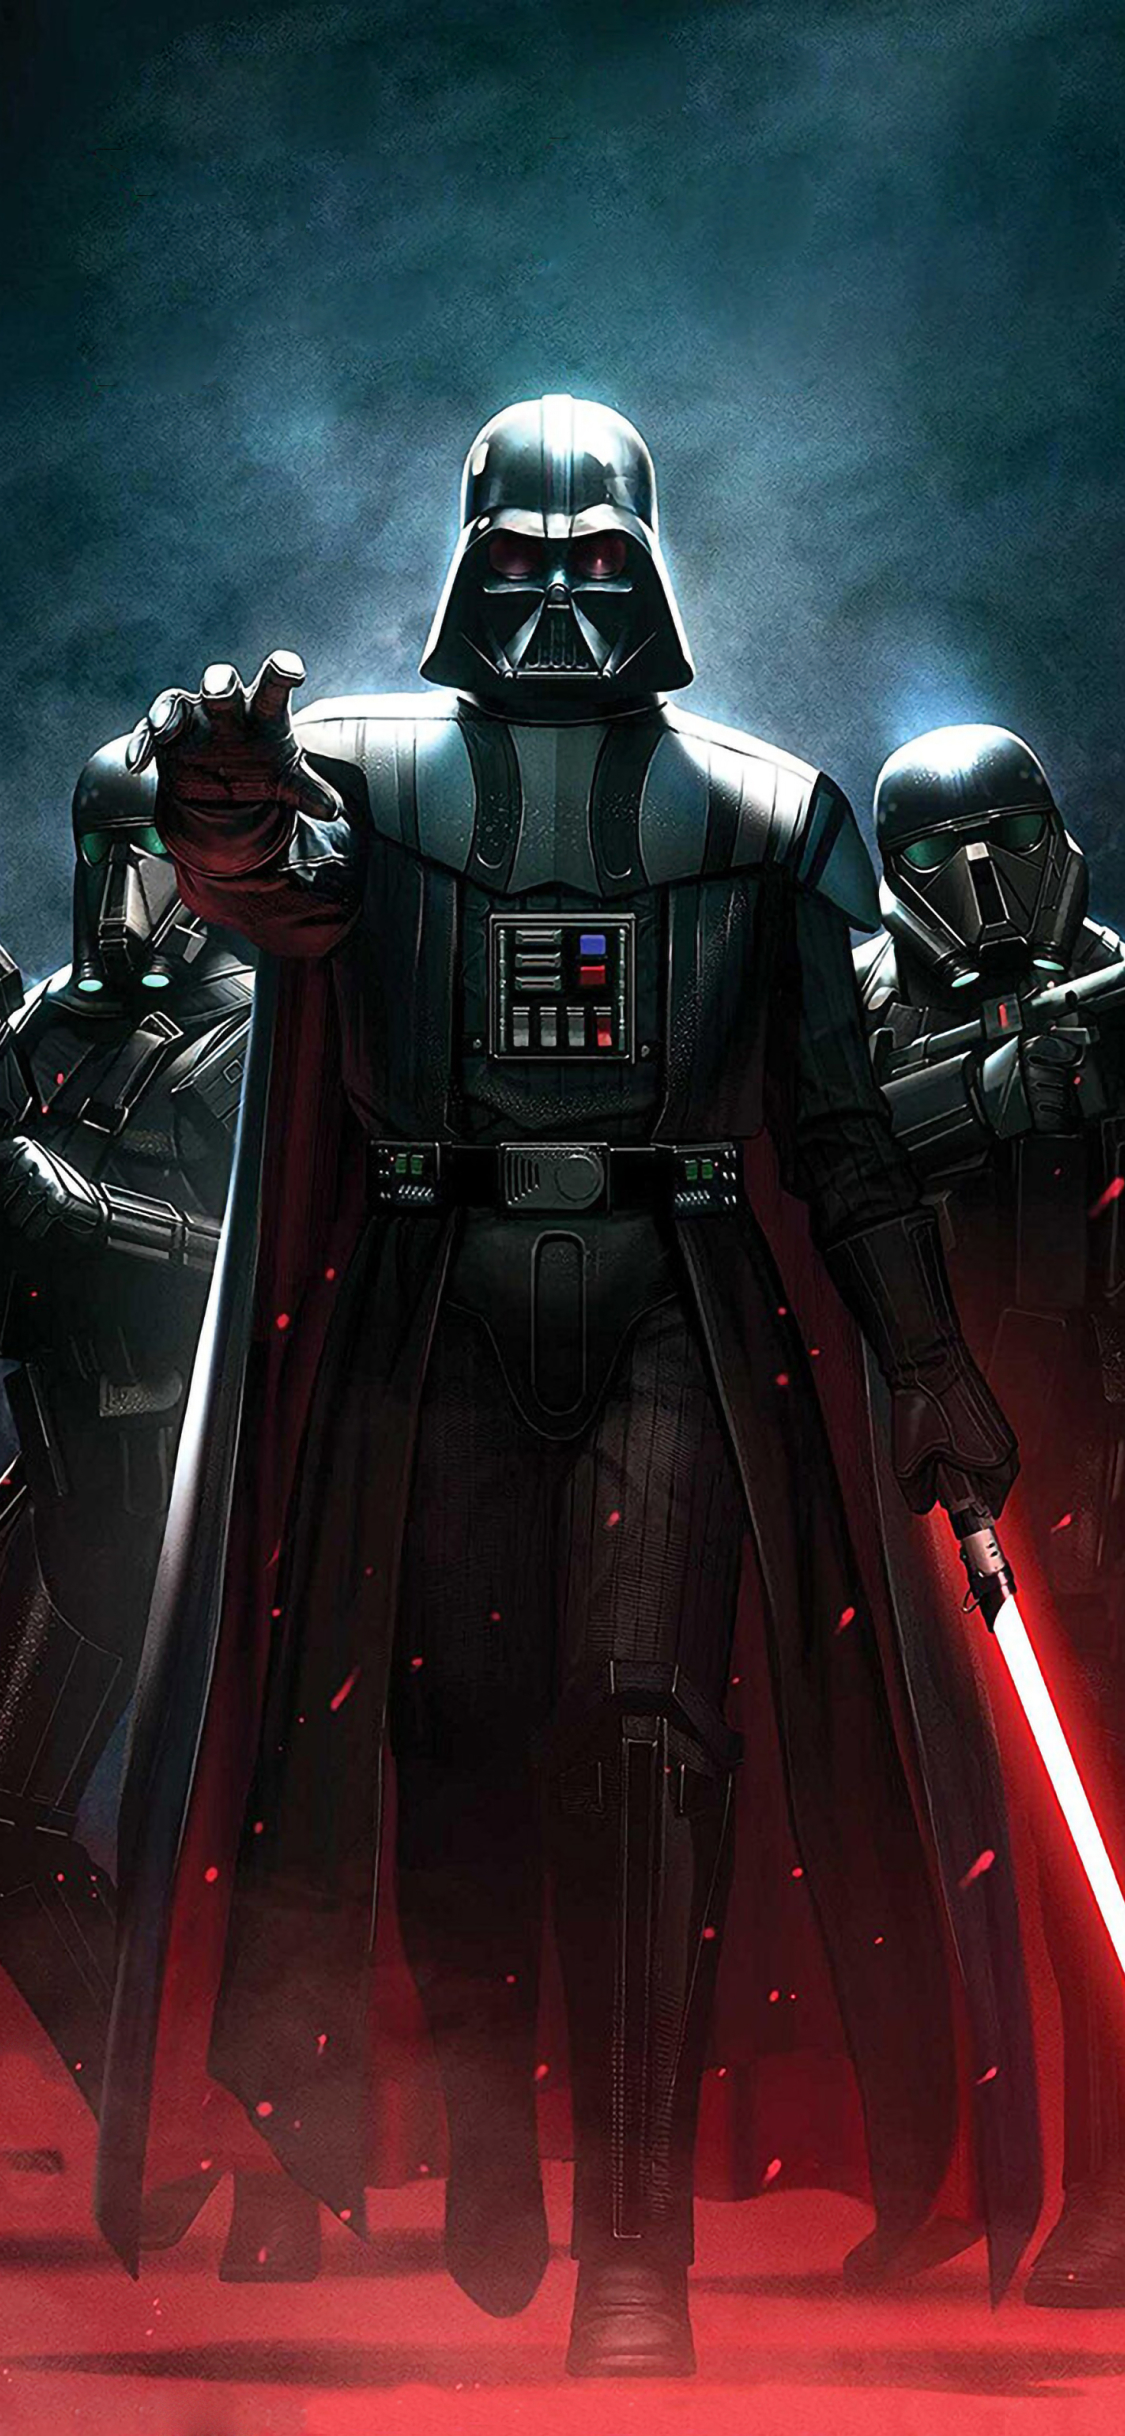 darth vedar star wars